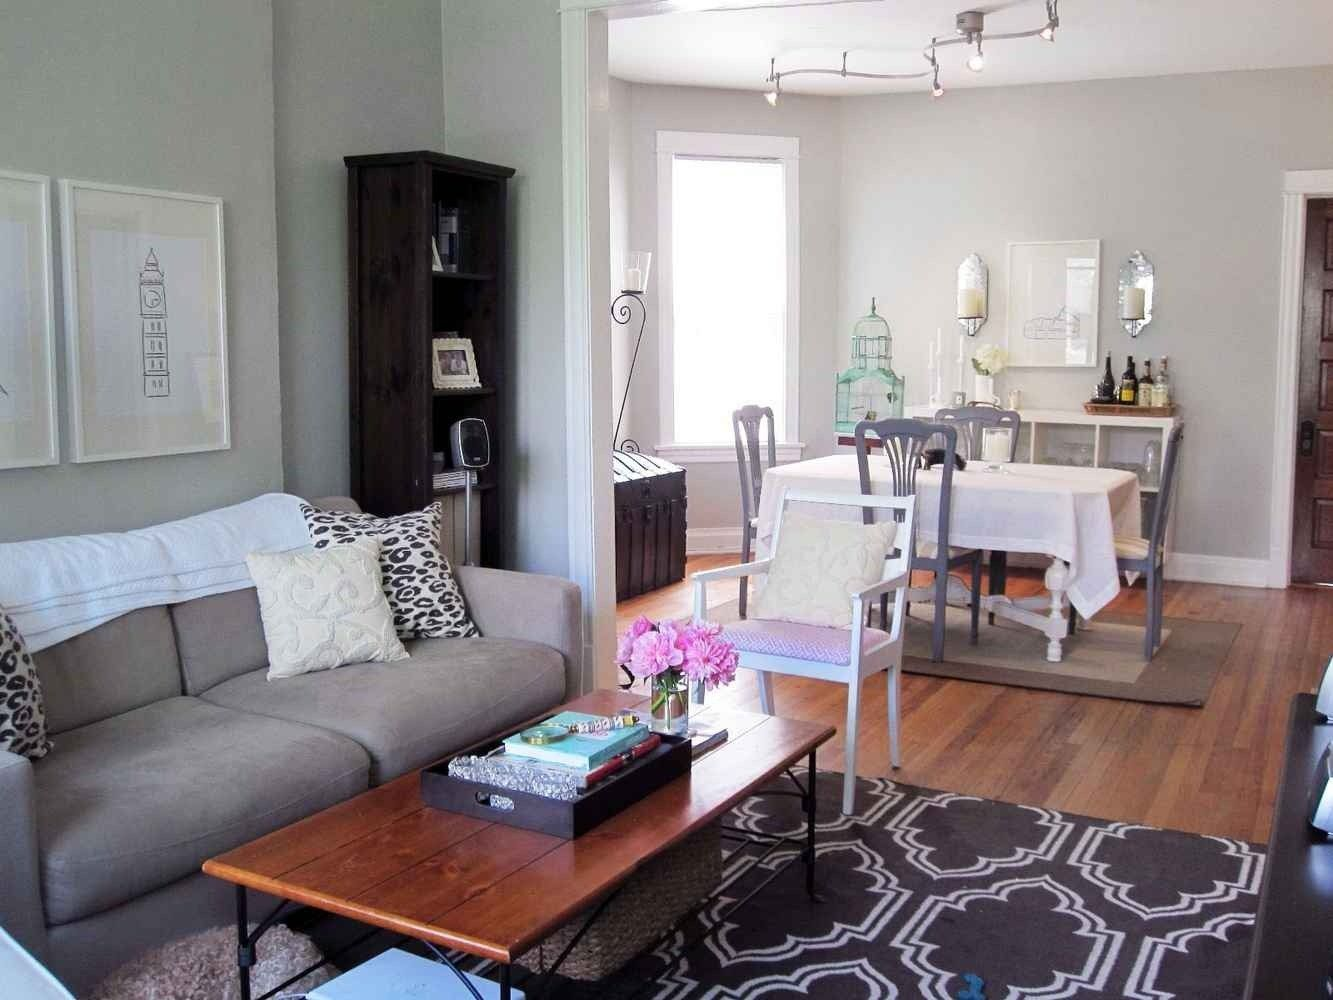 Pin On Living Room Furniture Ideas #small #living #room #with #dining #table